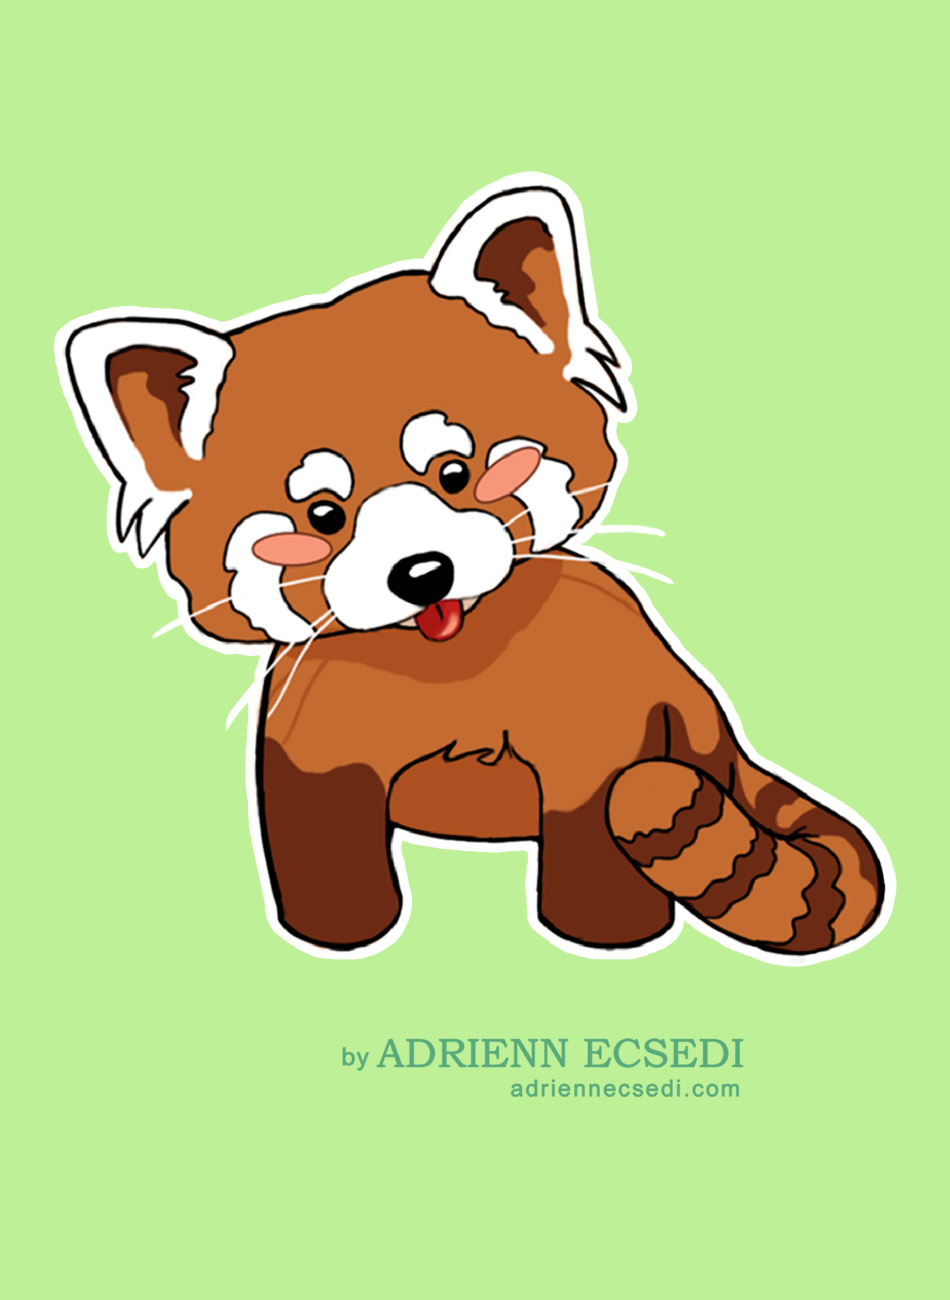 A blushing cute red panda with his tongue out.